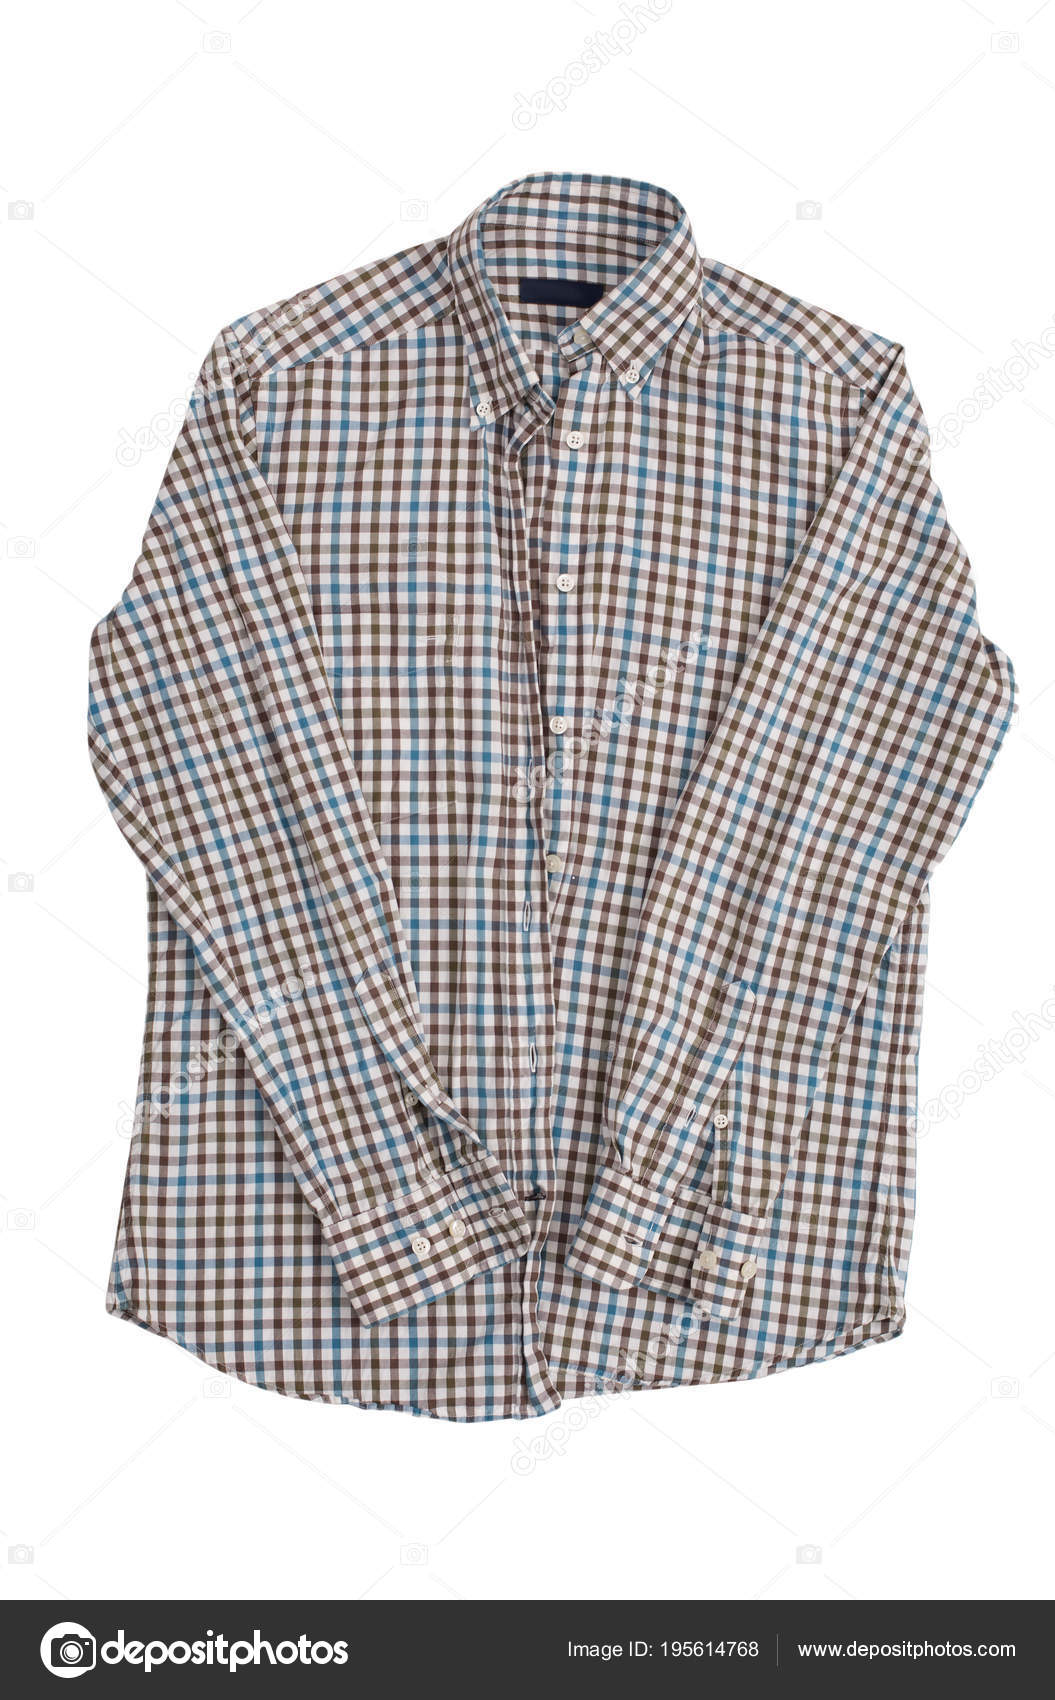 af8ee8668a0 Male checkered shirt